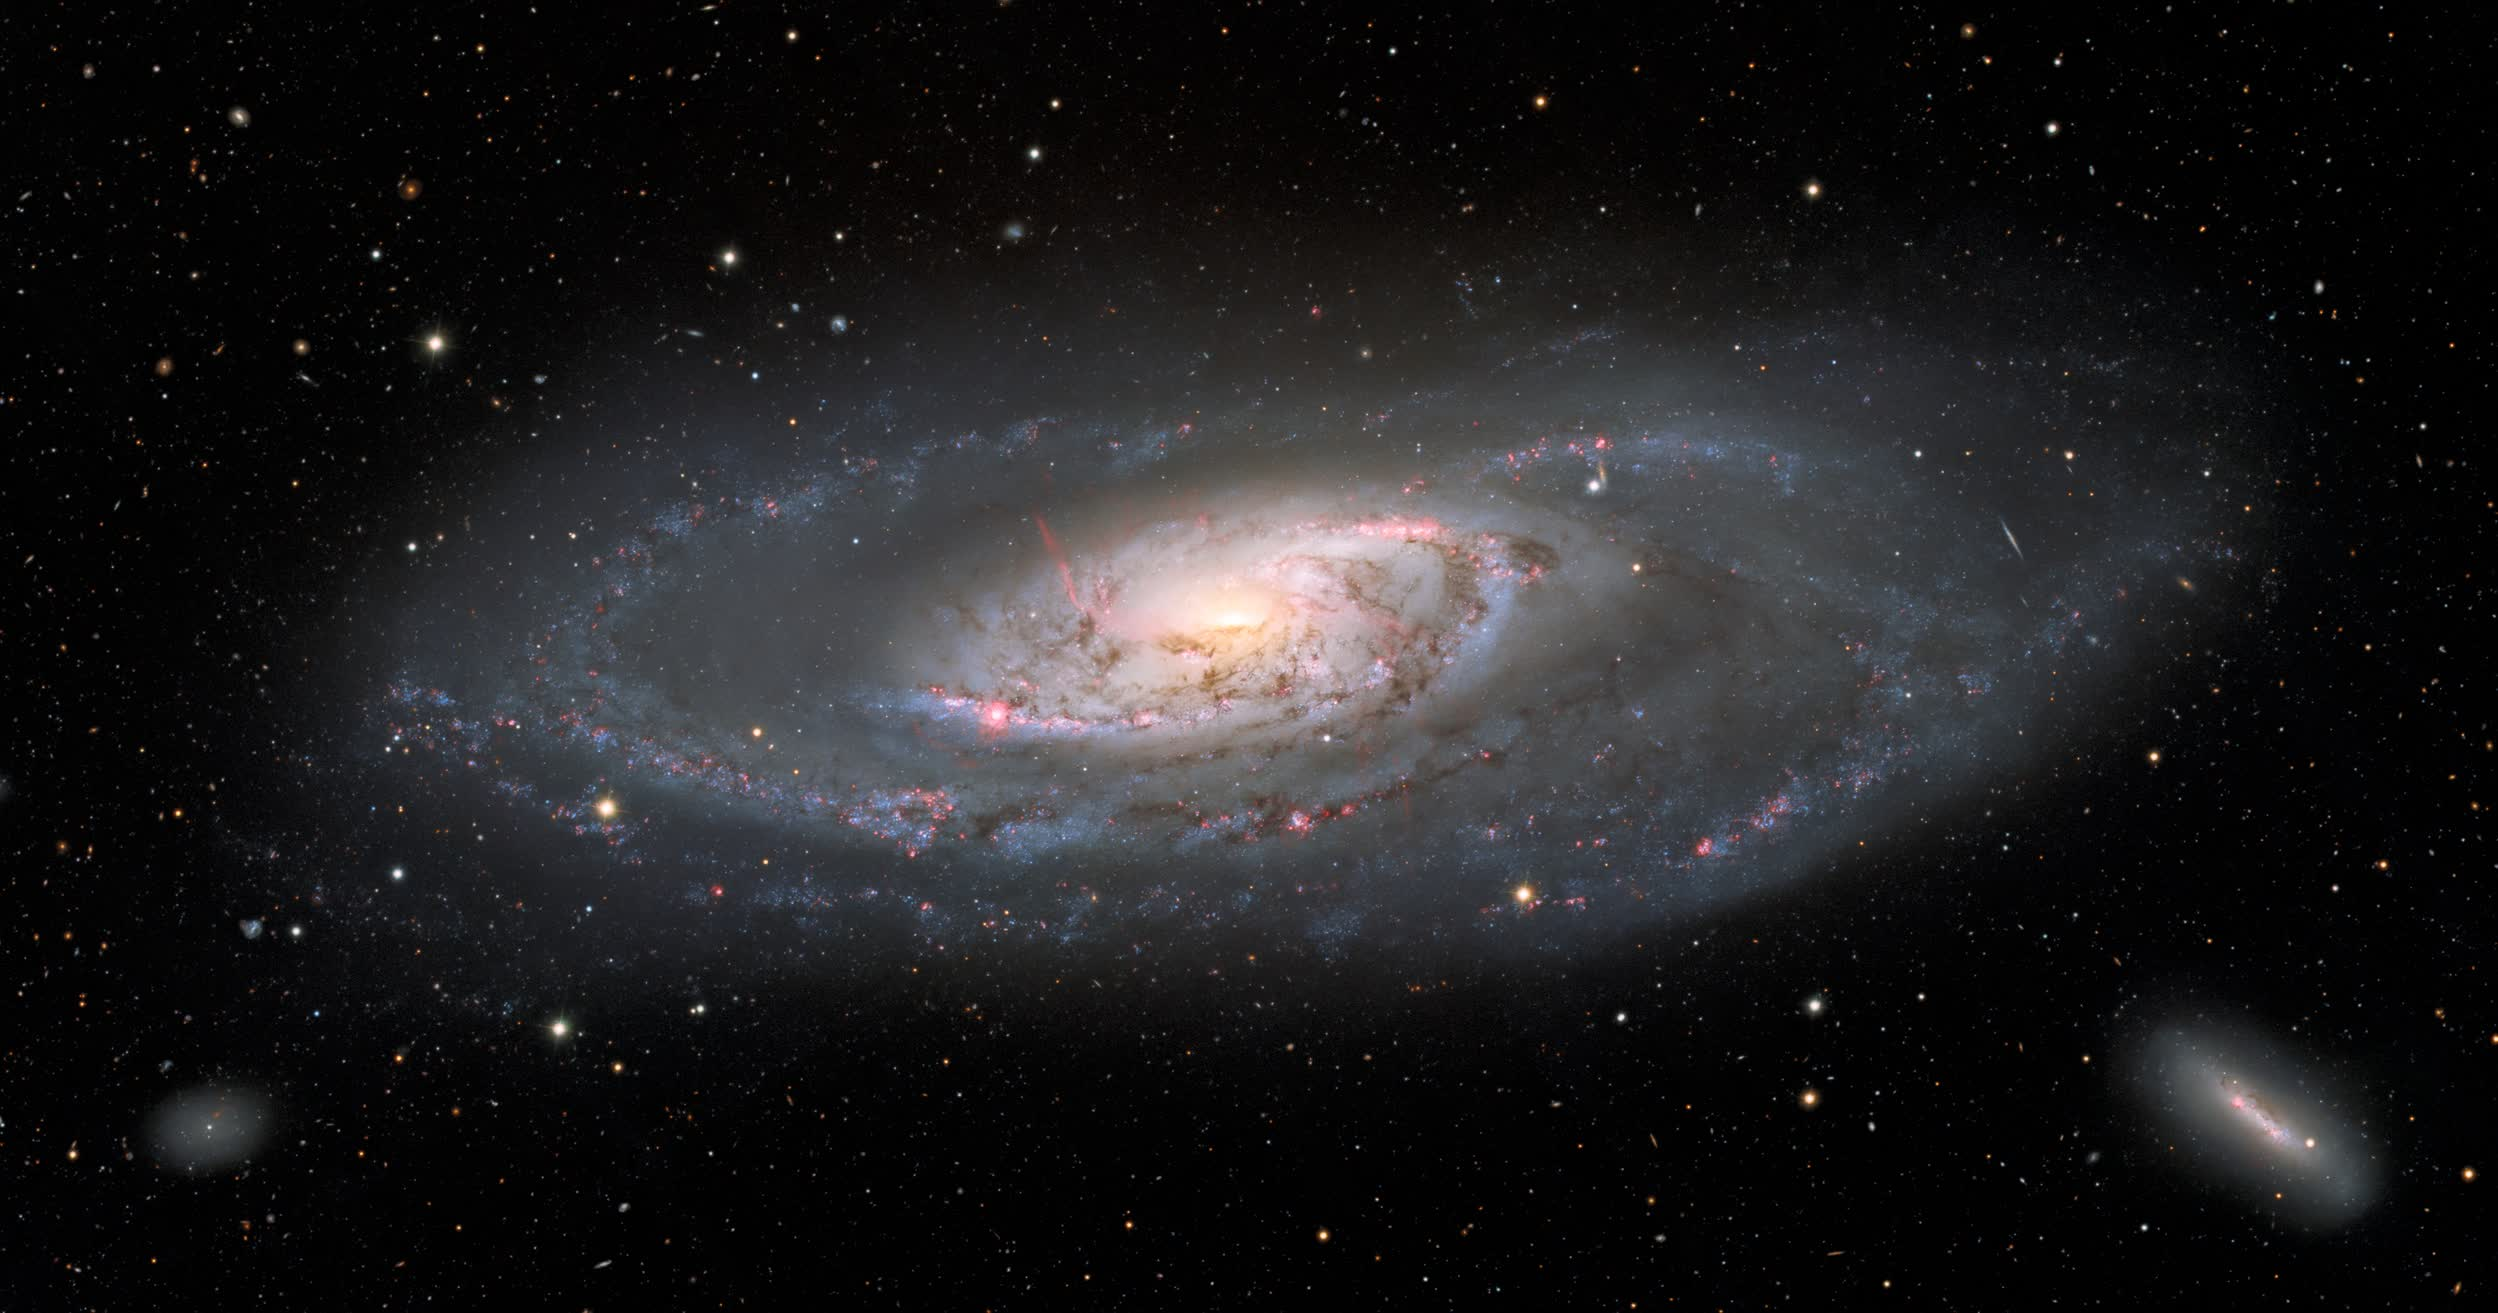 Striking image highlights the entirety of galaxy Messier 106